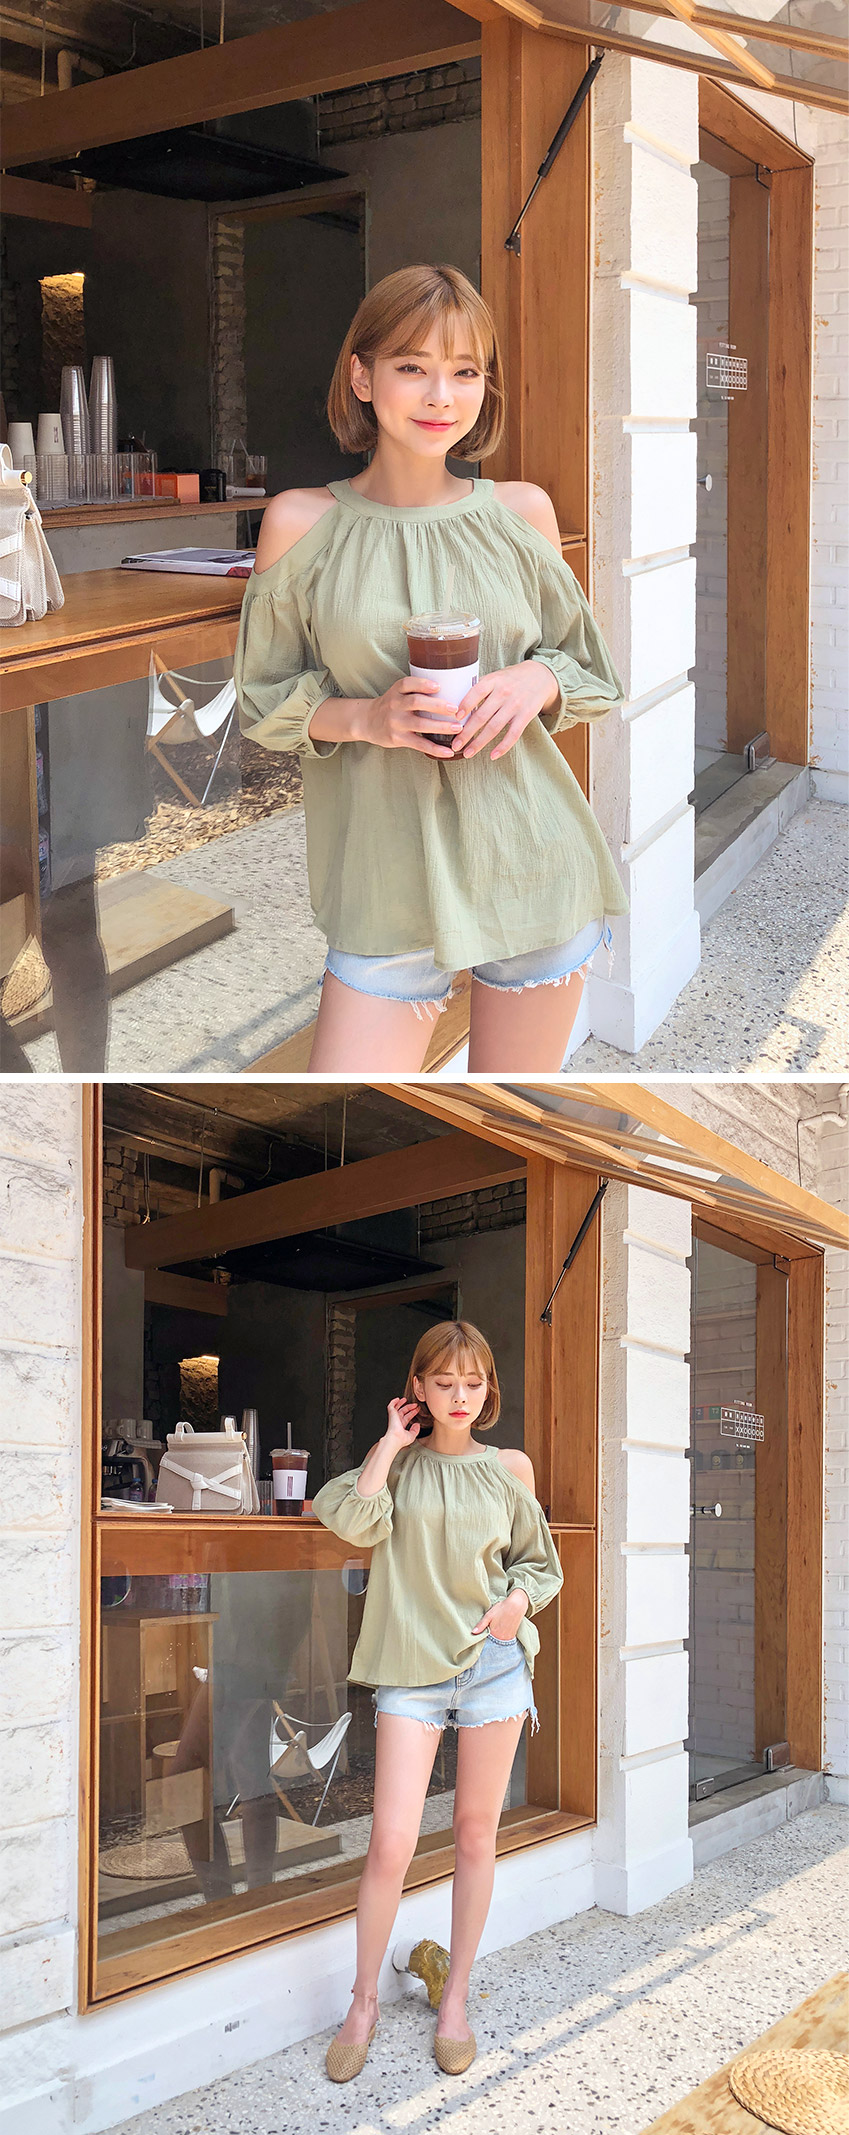 //cdn.nhanh.vn/cdn/store/29770/psCT/20180927/9207938/CHUU_Remember_The_Truth_Blouse_(1).jpg